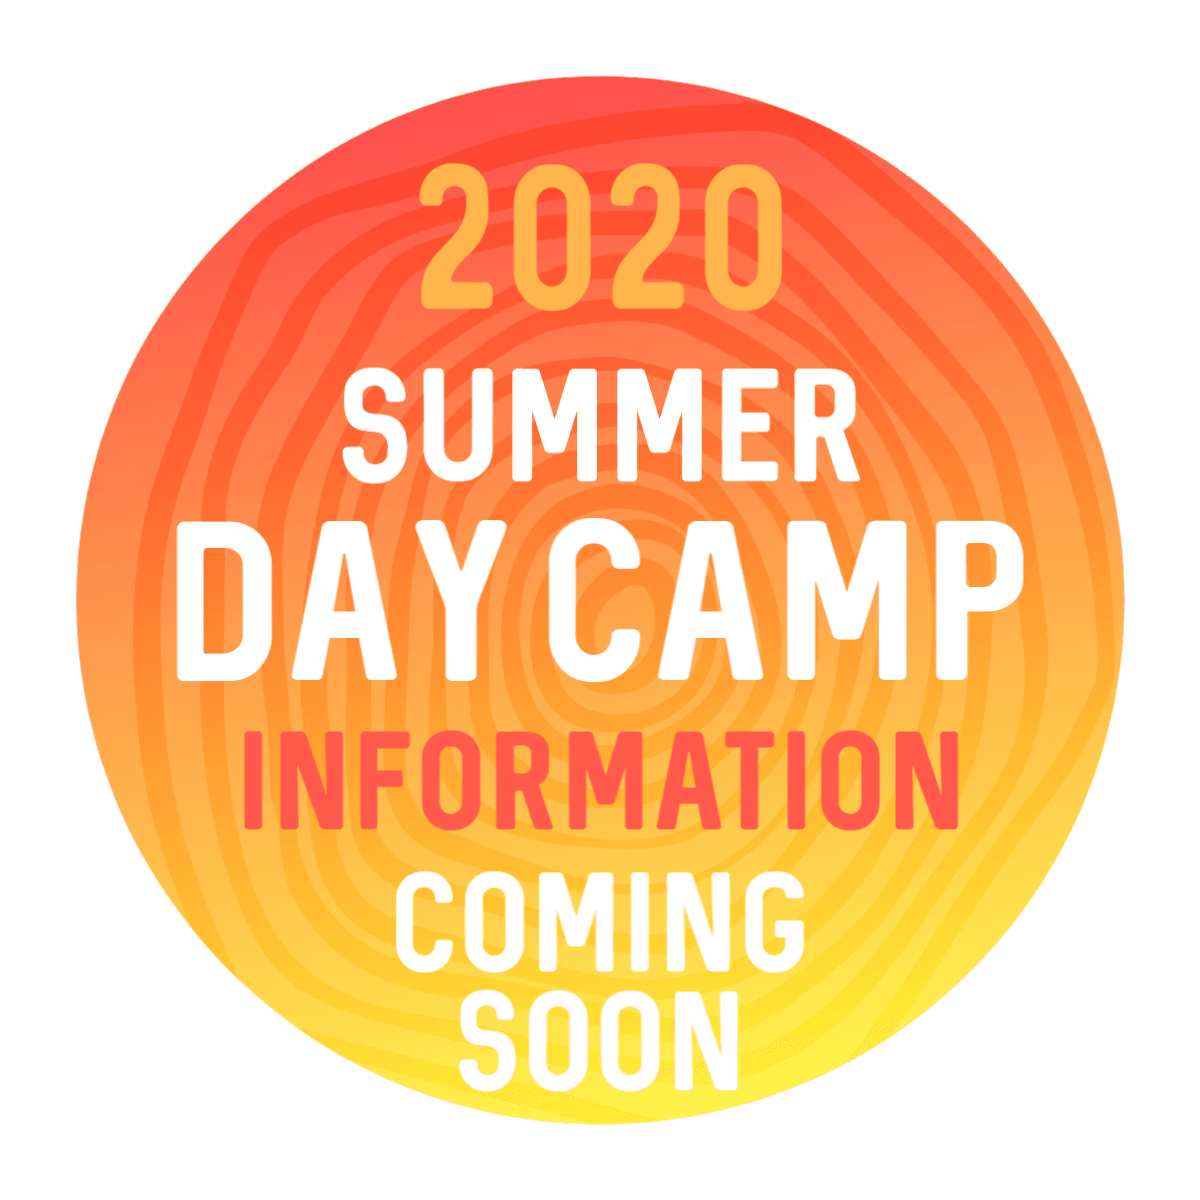 day camp coming soon